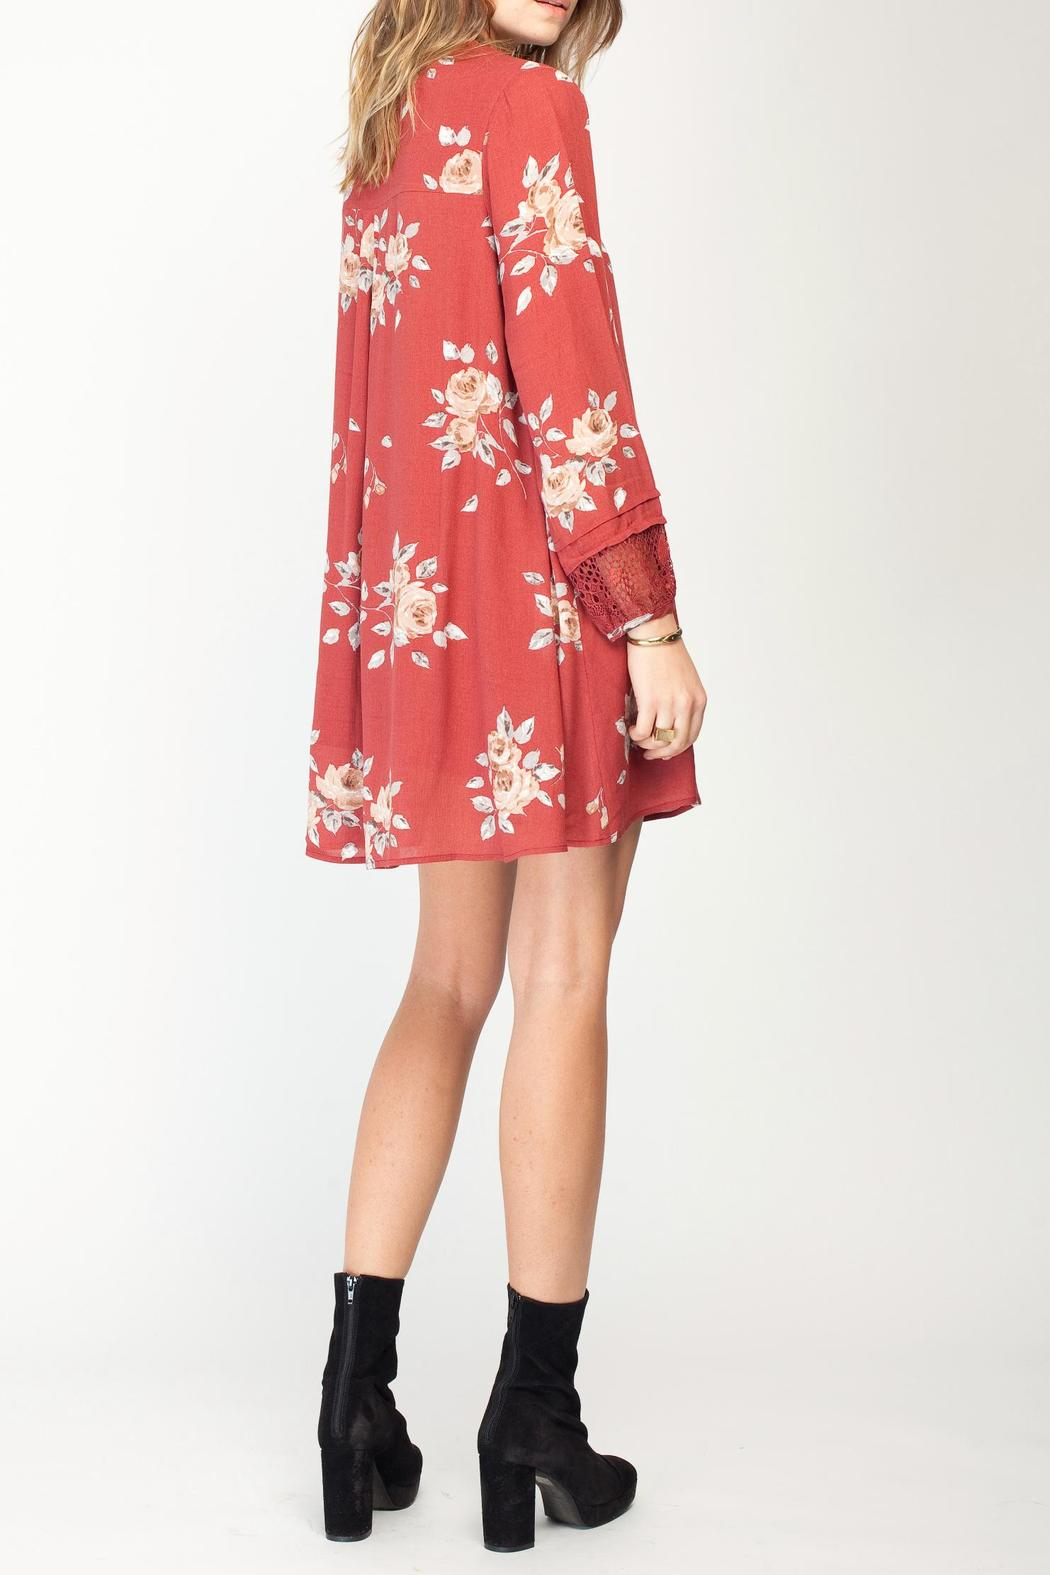 Gentle Fawn Floral Utopia Dress - Side Cropped Image